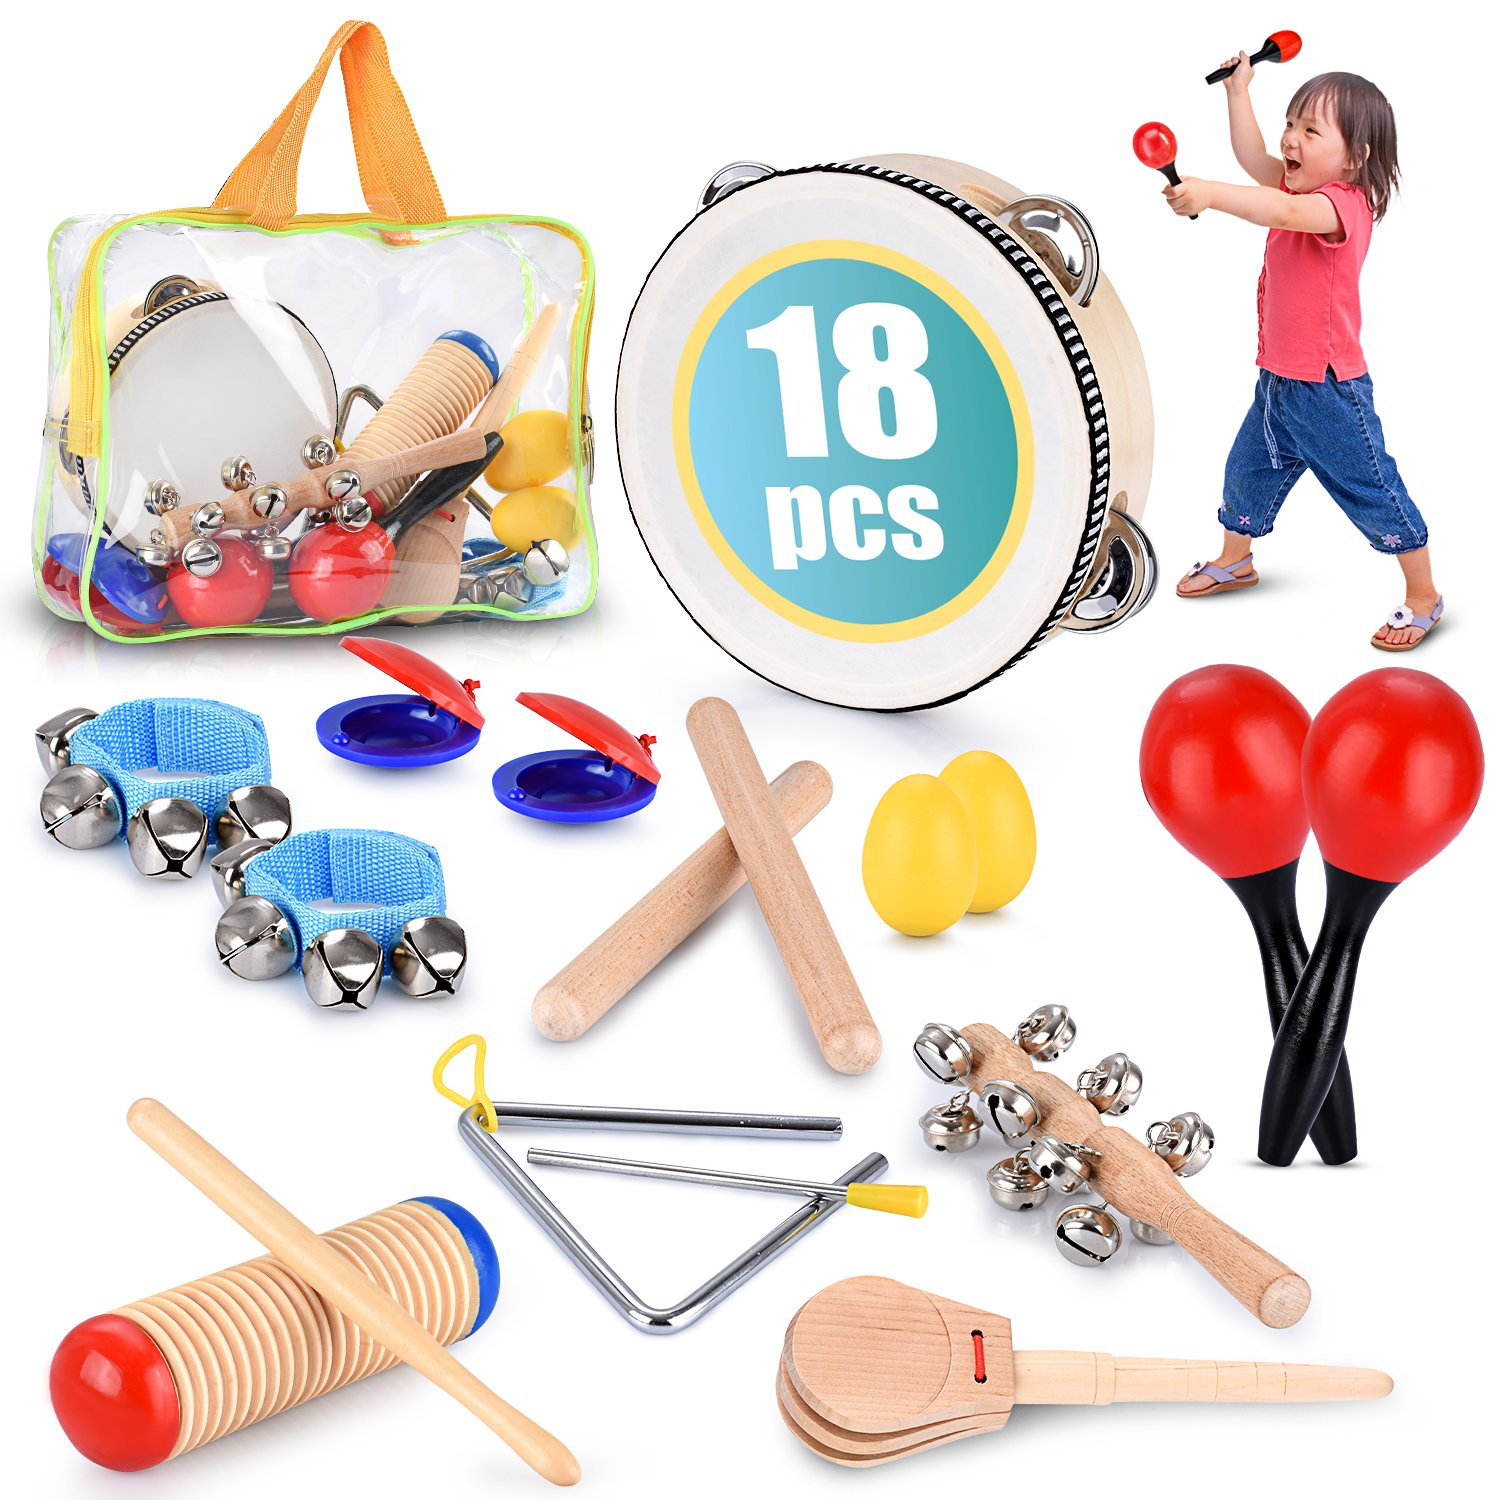 Toddler Educational & Musical Percussion for Kids & Children Instruments Set 18 Pcs - with Tambourine, Maracas, Castanets & More - Promote Fine Motor Skills, Enhance Hand to Eye Coordination, by BRITENWAY